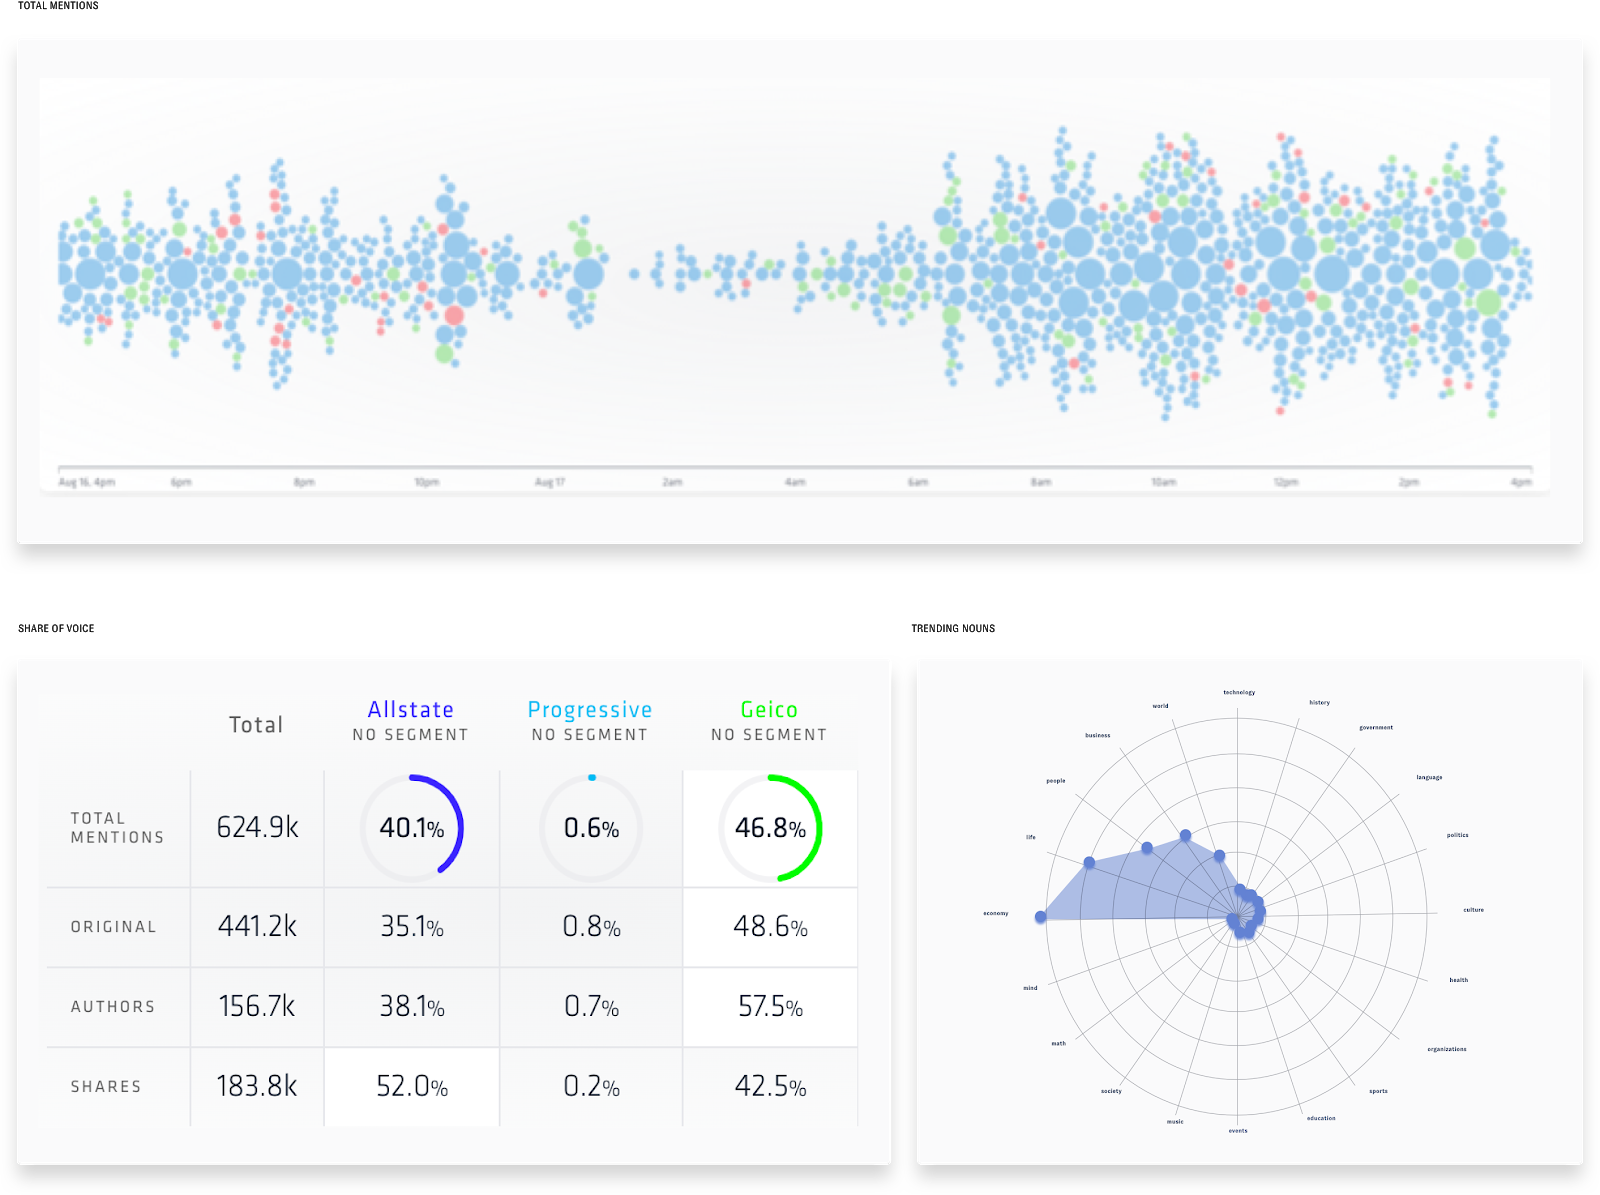 Nuvi's social listening platforms includes many visualizations for social analytics. The first one shown here is Nuvi's patented bubble stream, the next is Nuvi's new share of voice dashboard with it's four categories of analysis (total mentions, original posts, authors, and shares), the last visualization is called trending nouns as a web graph.